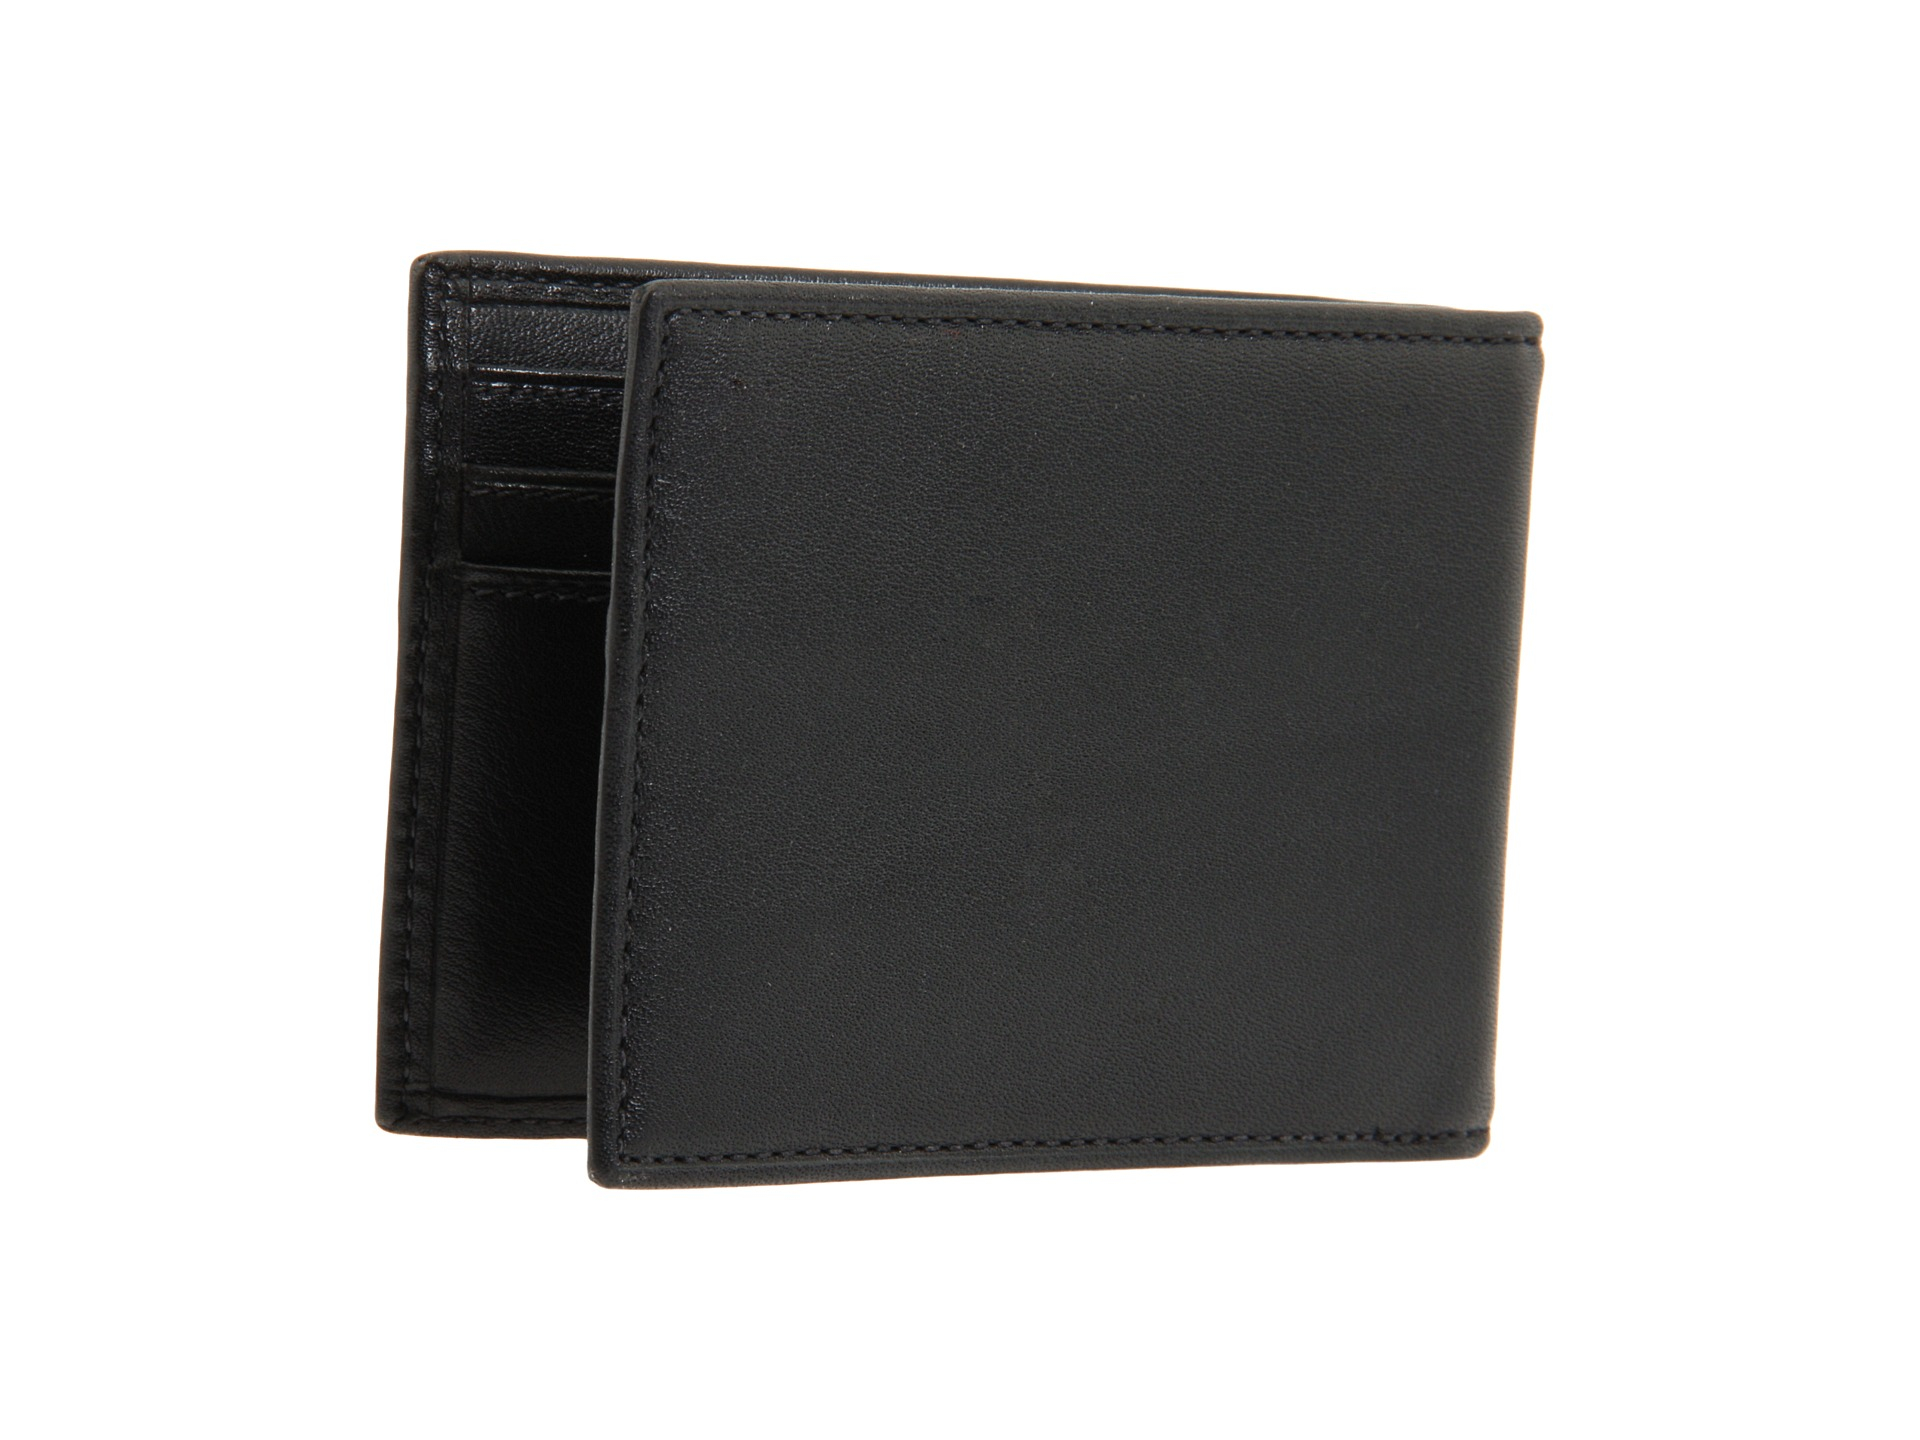 promo code f0448 0bb20 Men's Black Delta Money Clip Wallet